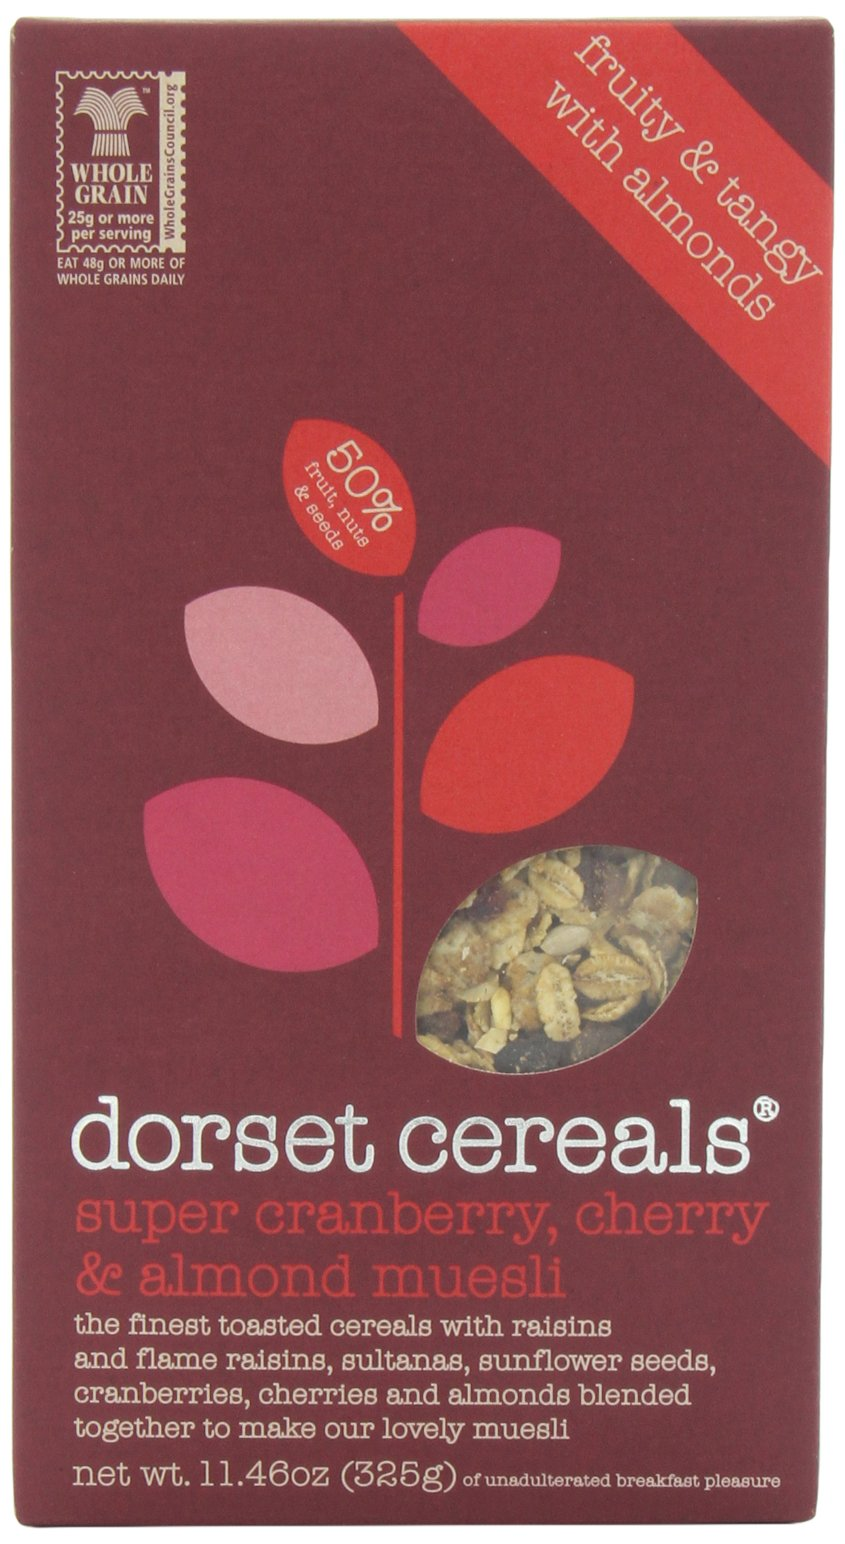 Dorset Cereals Muesli, Super Cranberry, Cherry and Almond, 11.46-Ounce (325g) (Pack of 5)